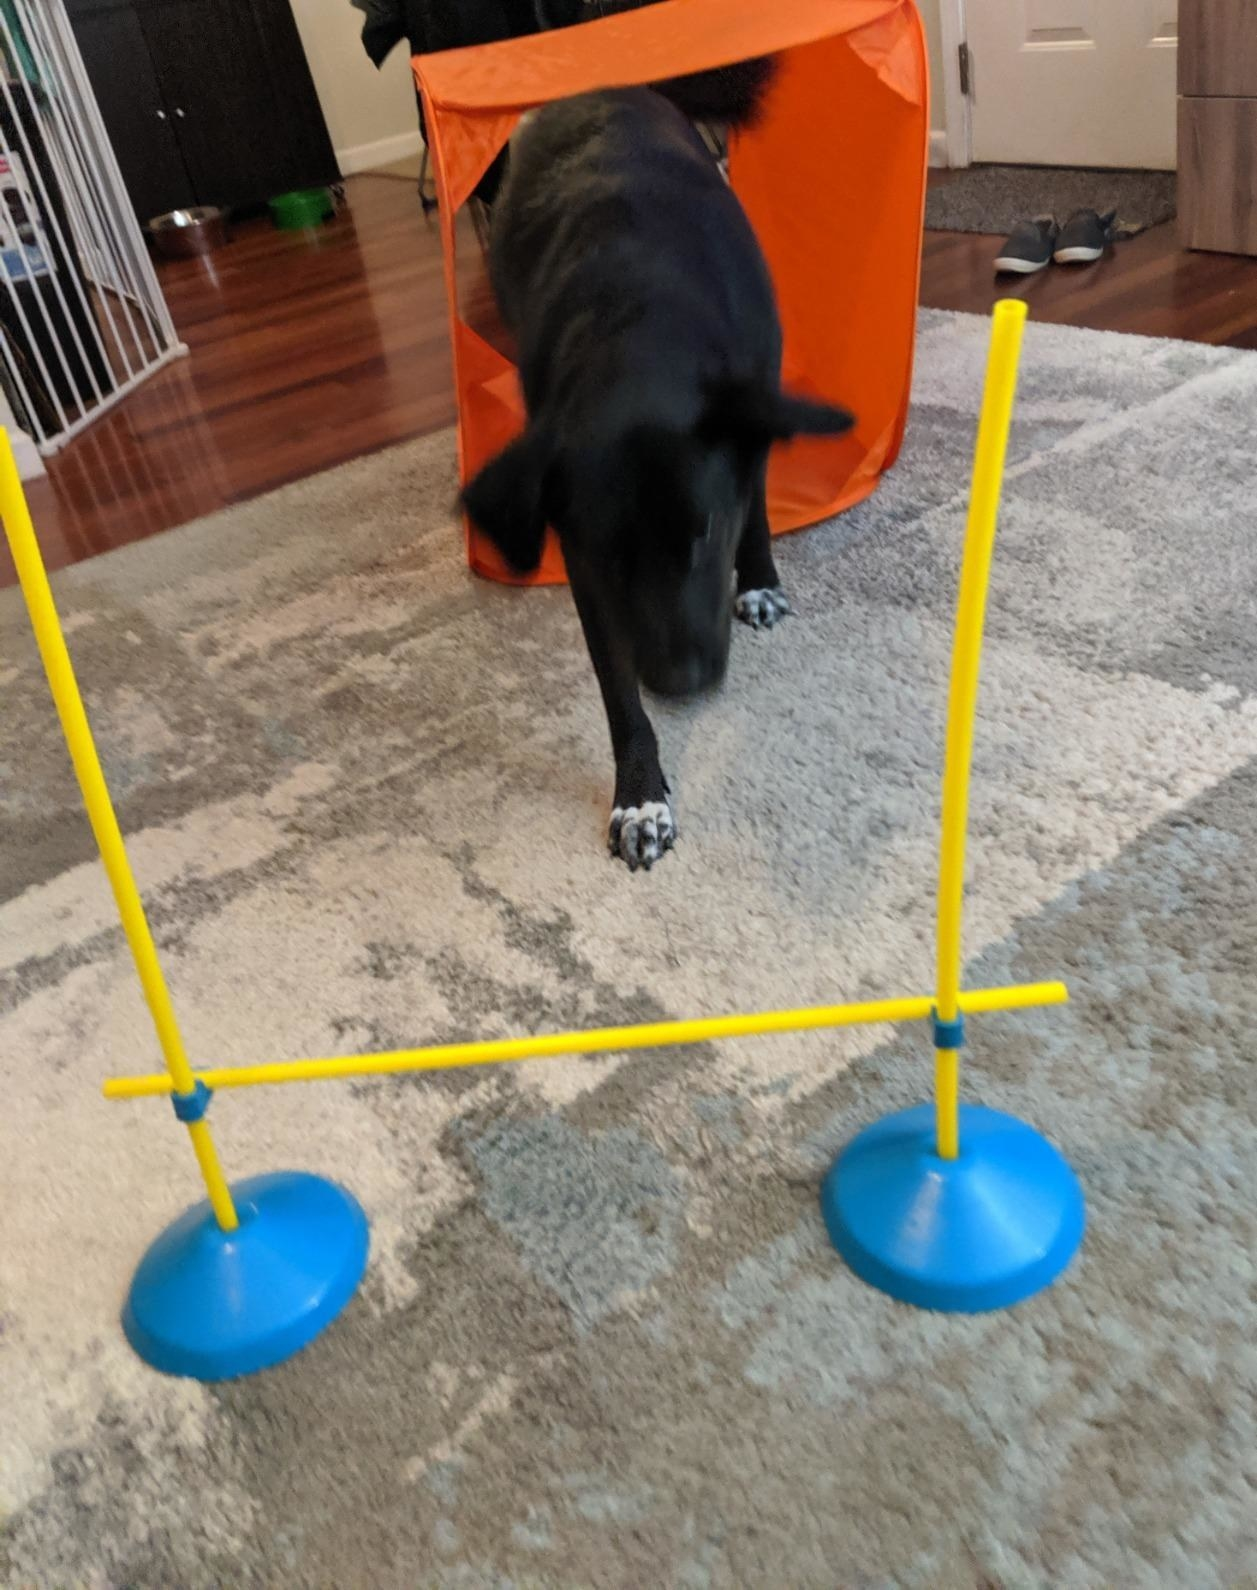 Reviewer's dog playing with the course in their living room